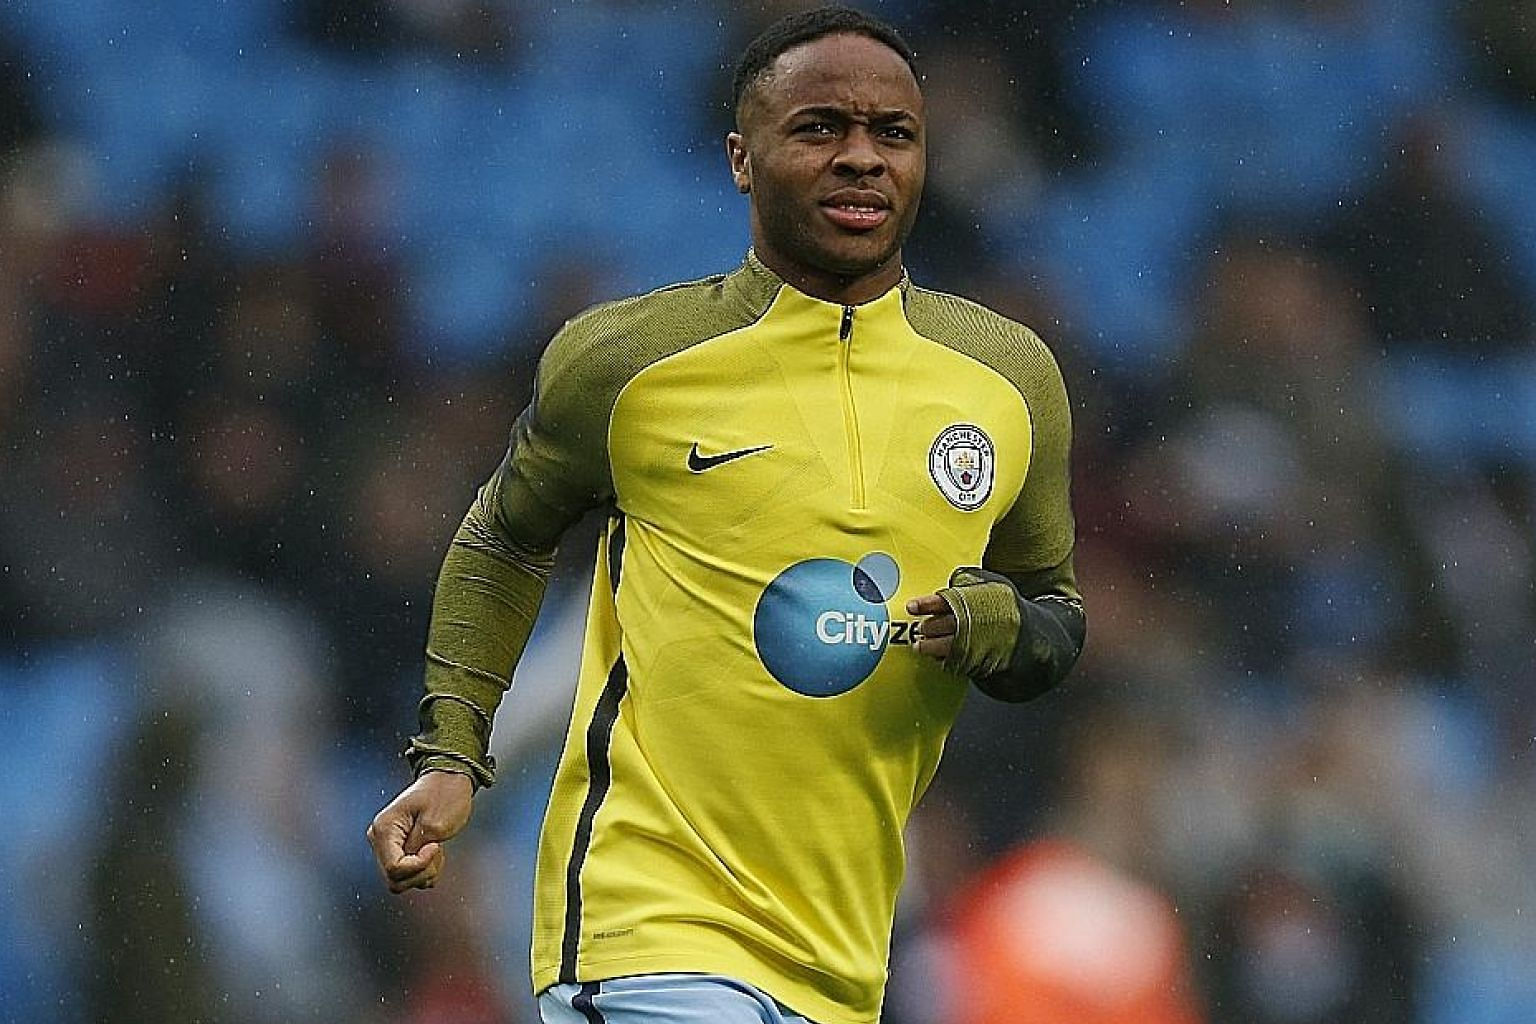 Raheem Sterling is aiming to improve his season goals tally from 11 goals to about 15-16 per season.